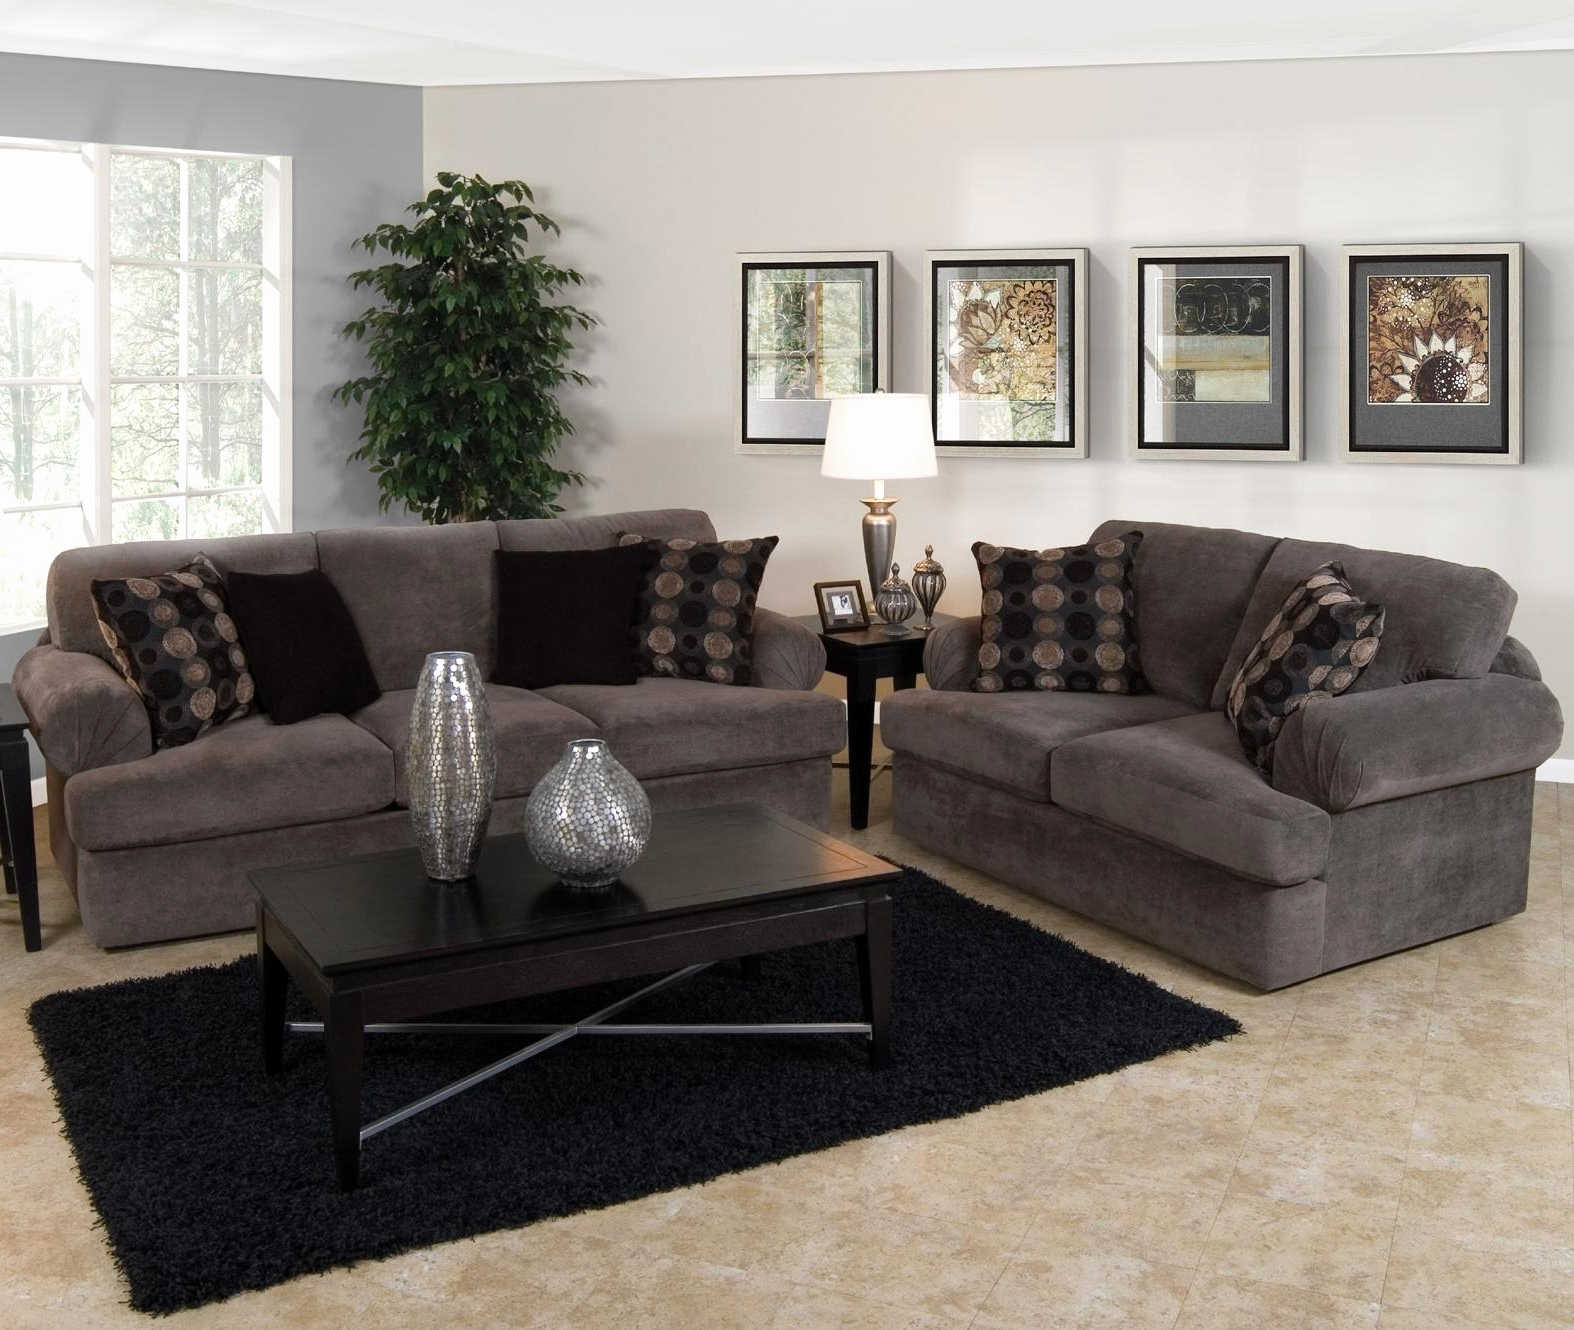 Elegant England Sectional Sofa 2018 – Couches Ideas Inside Popular Nova Scotia Sectional Sofas (Gallery 2 of 20)